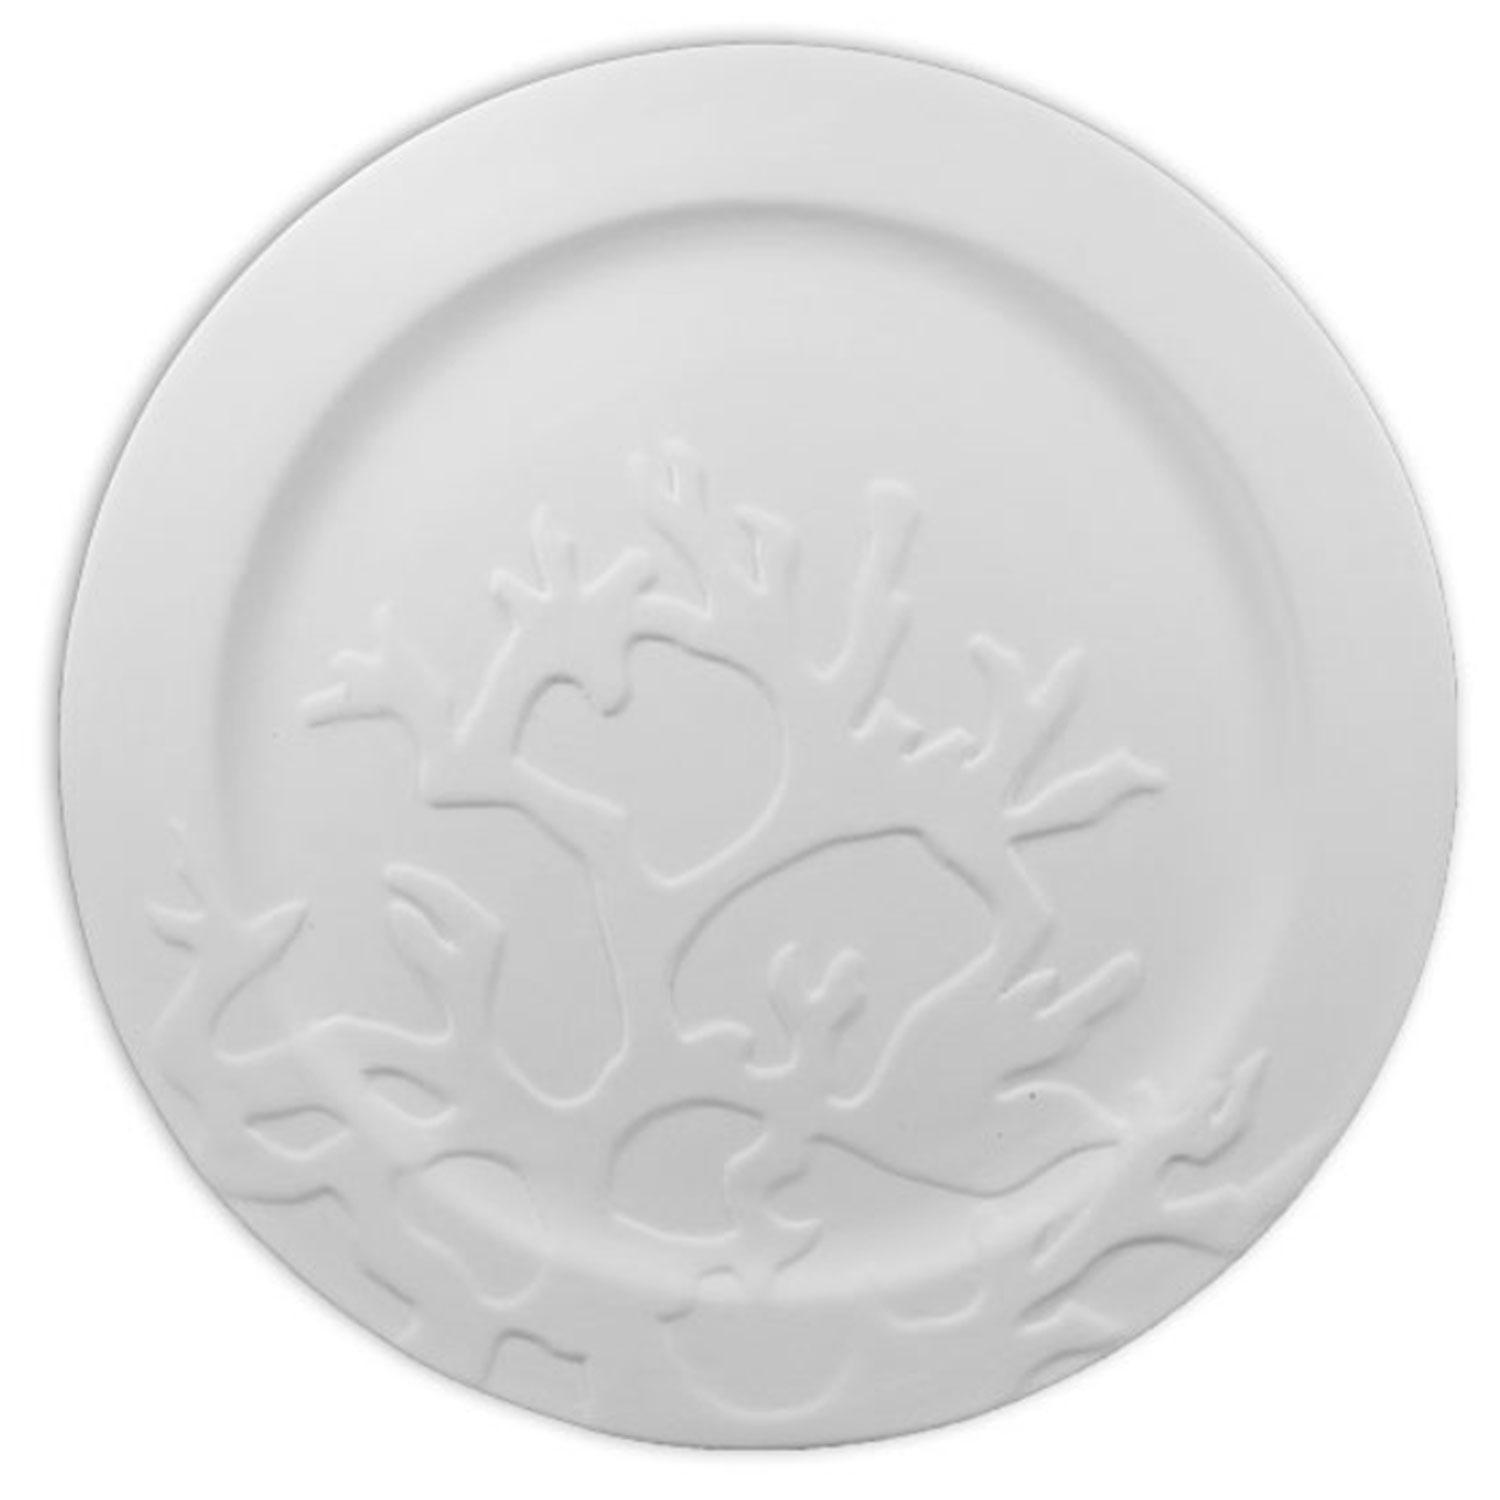 10-1/4 Coral Plate Mold